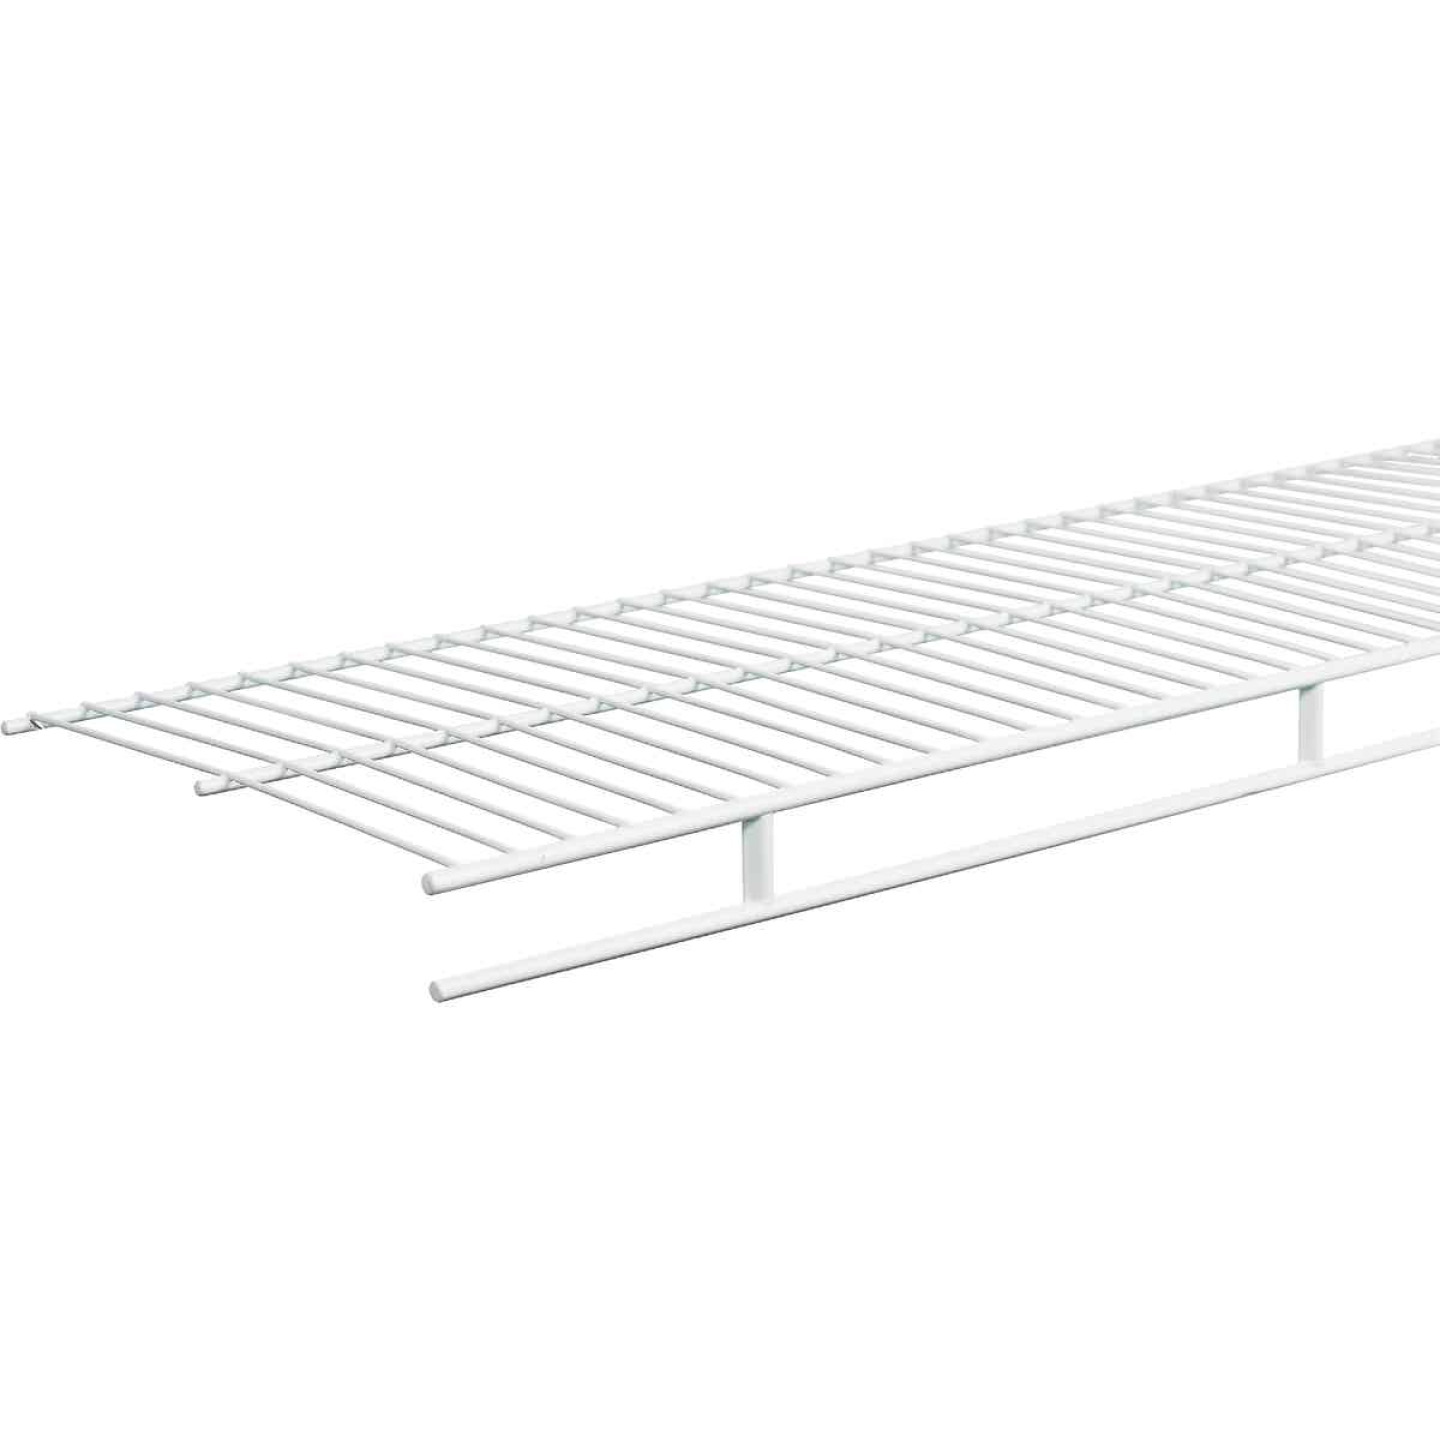 ClosetMaid 4 Ft. W. x 12 In. D. Ventilated Wire Shelf & Rod, White Image 1